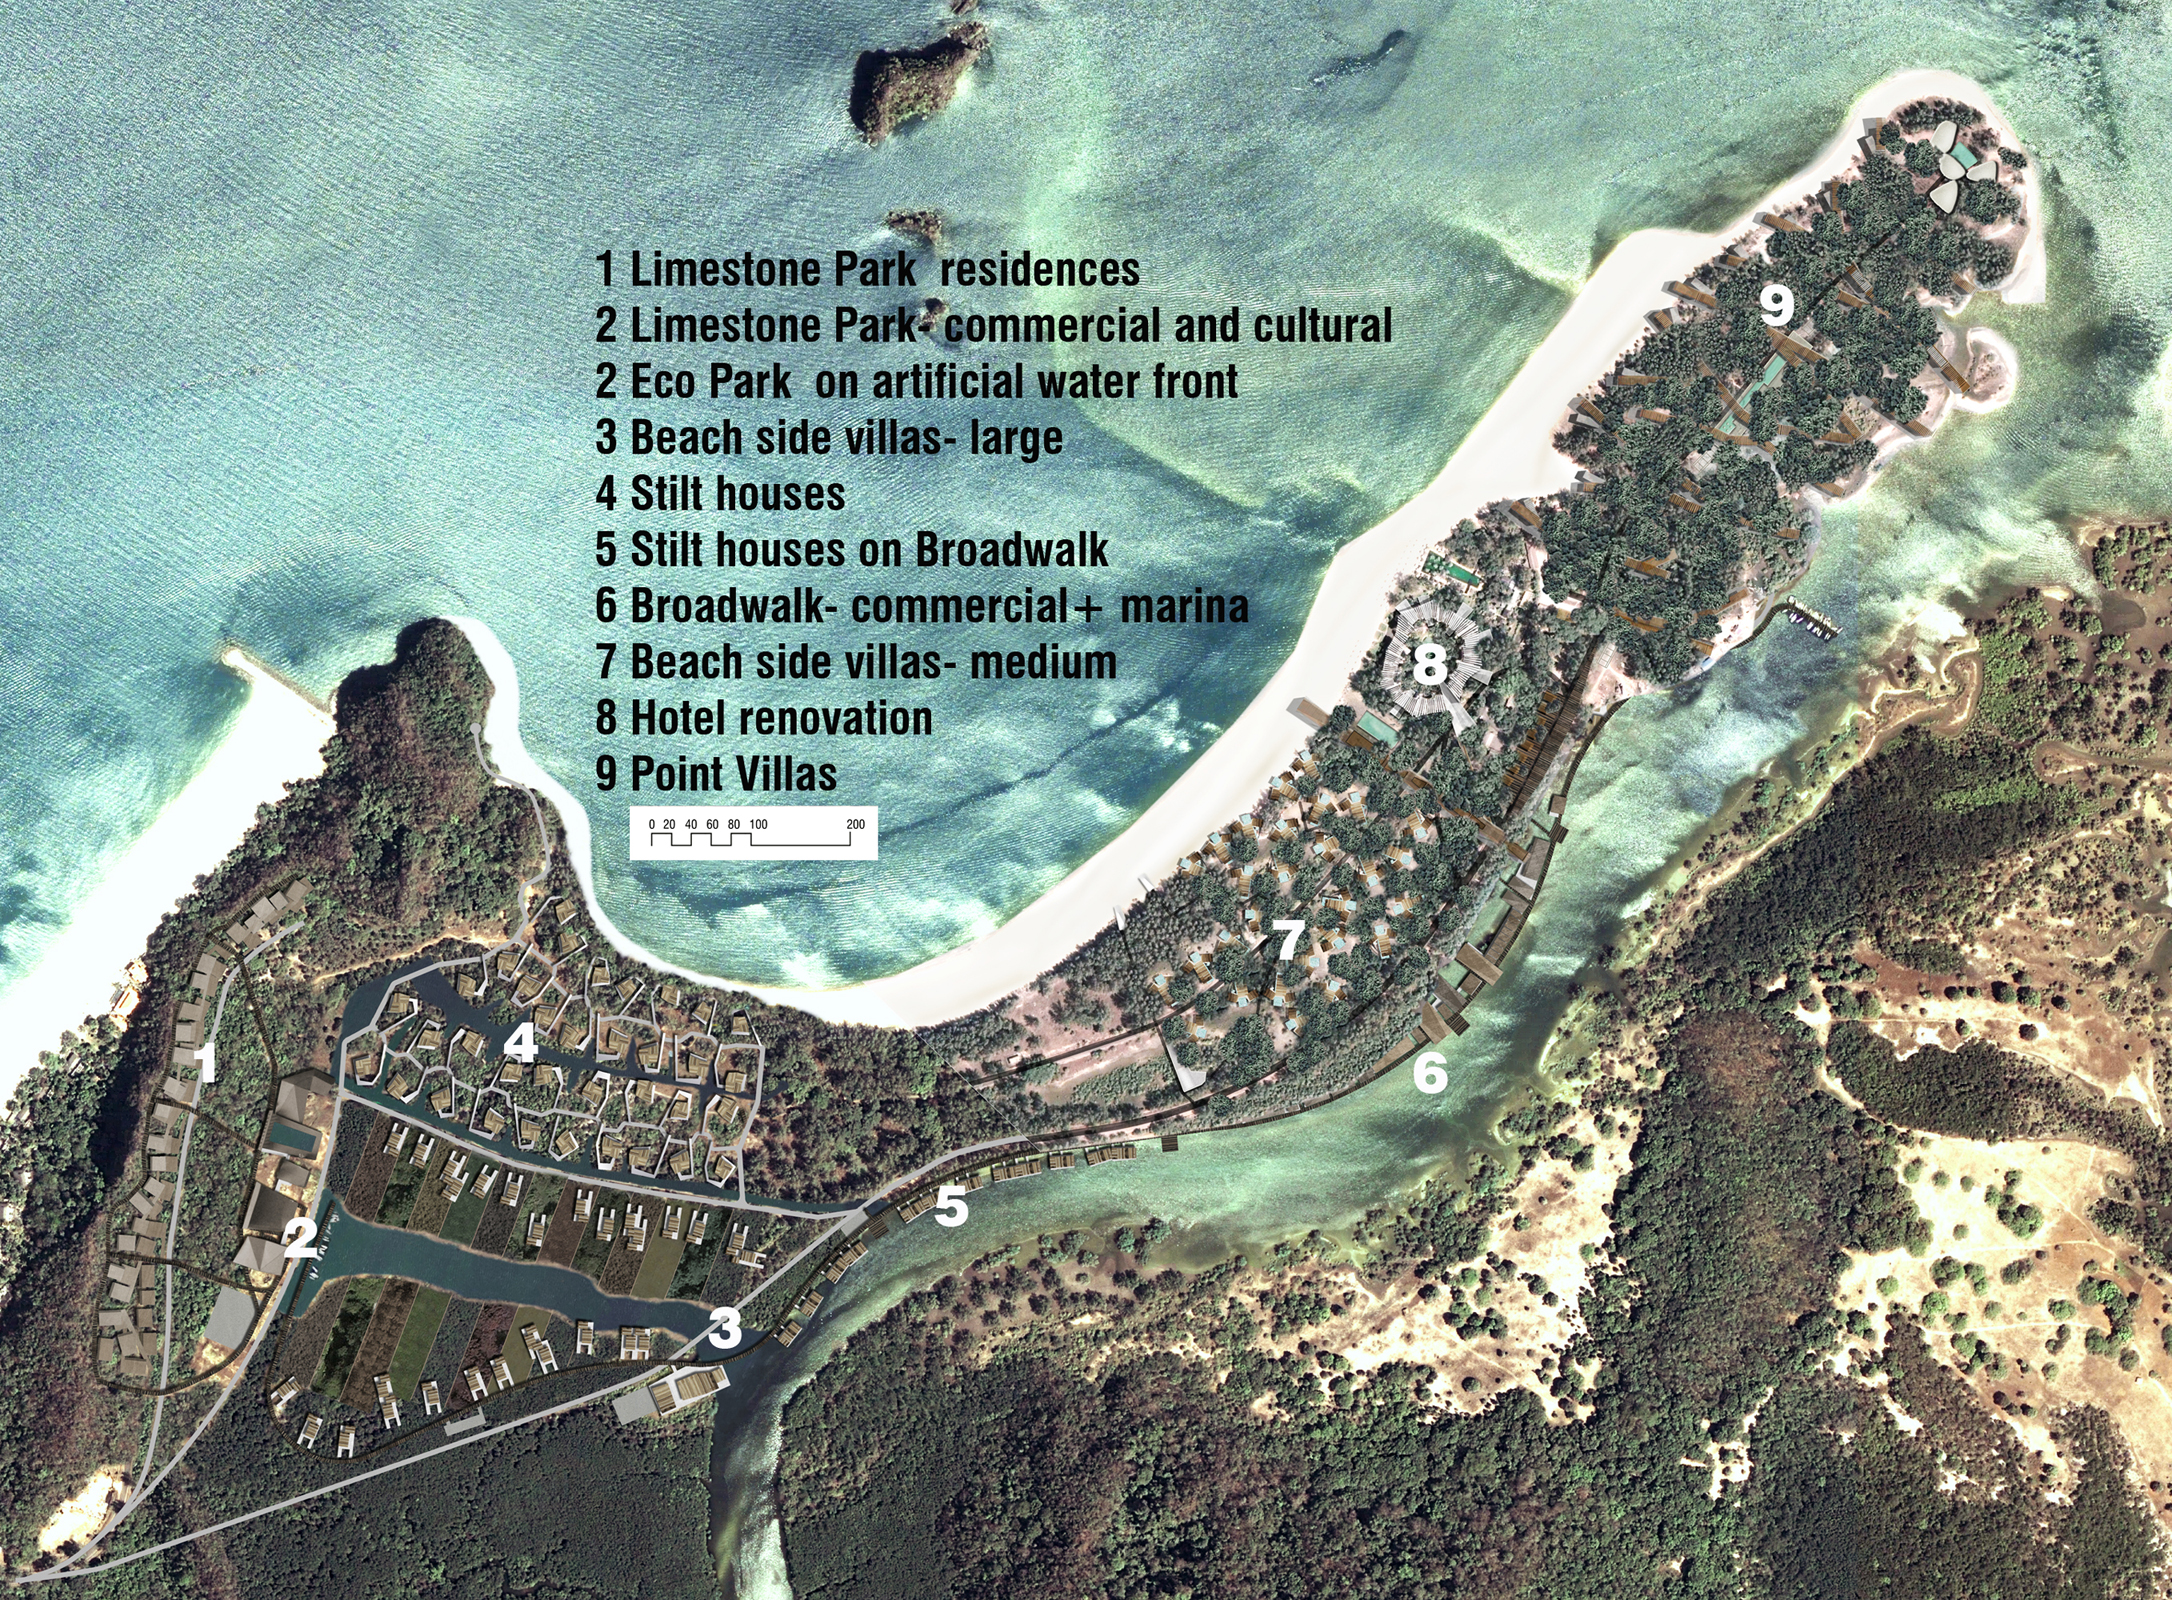 Masterplan from Limestone Village to the Point